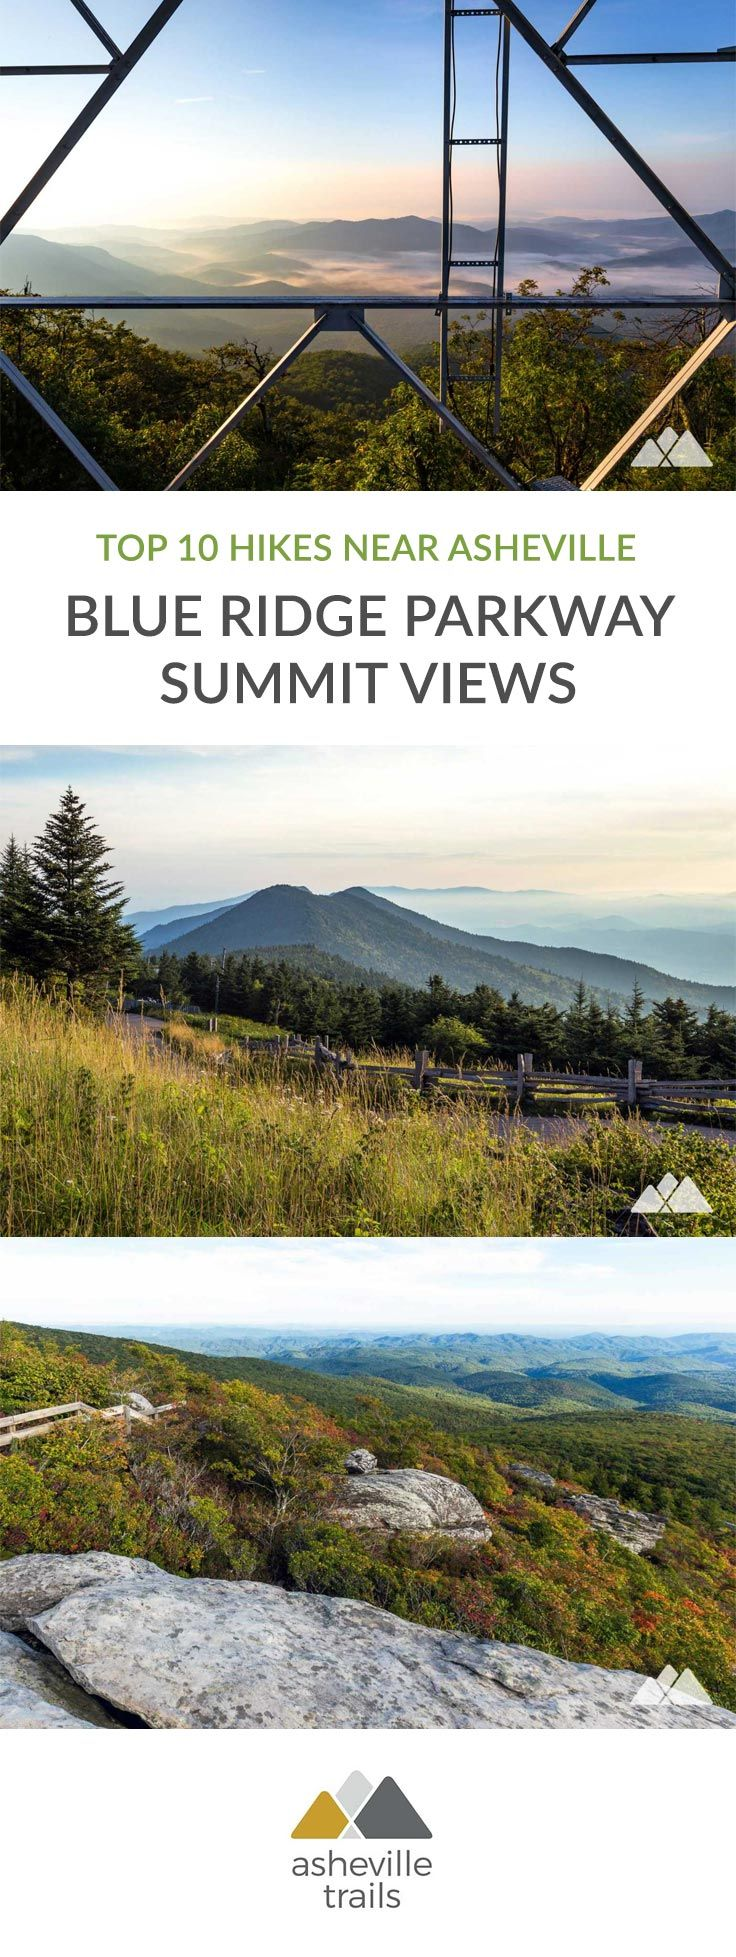 Asheville Blue Ridge Parkway: top 10 favorite hikes to summit views